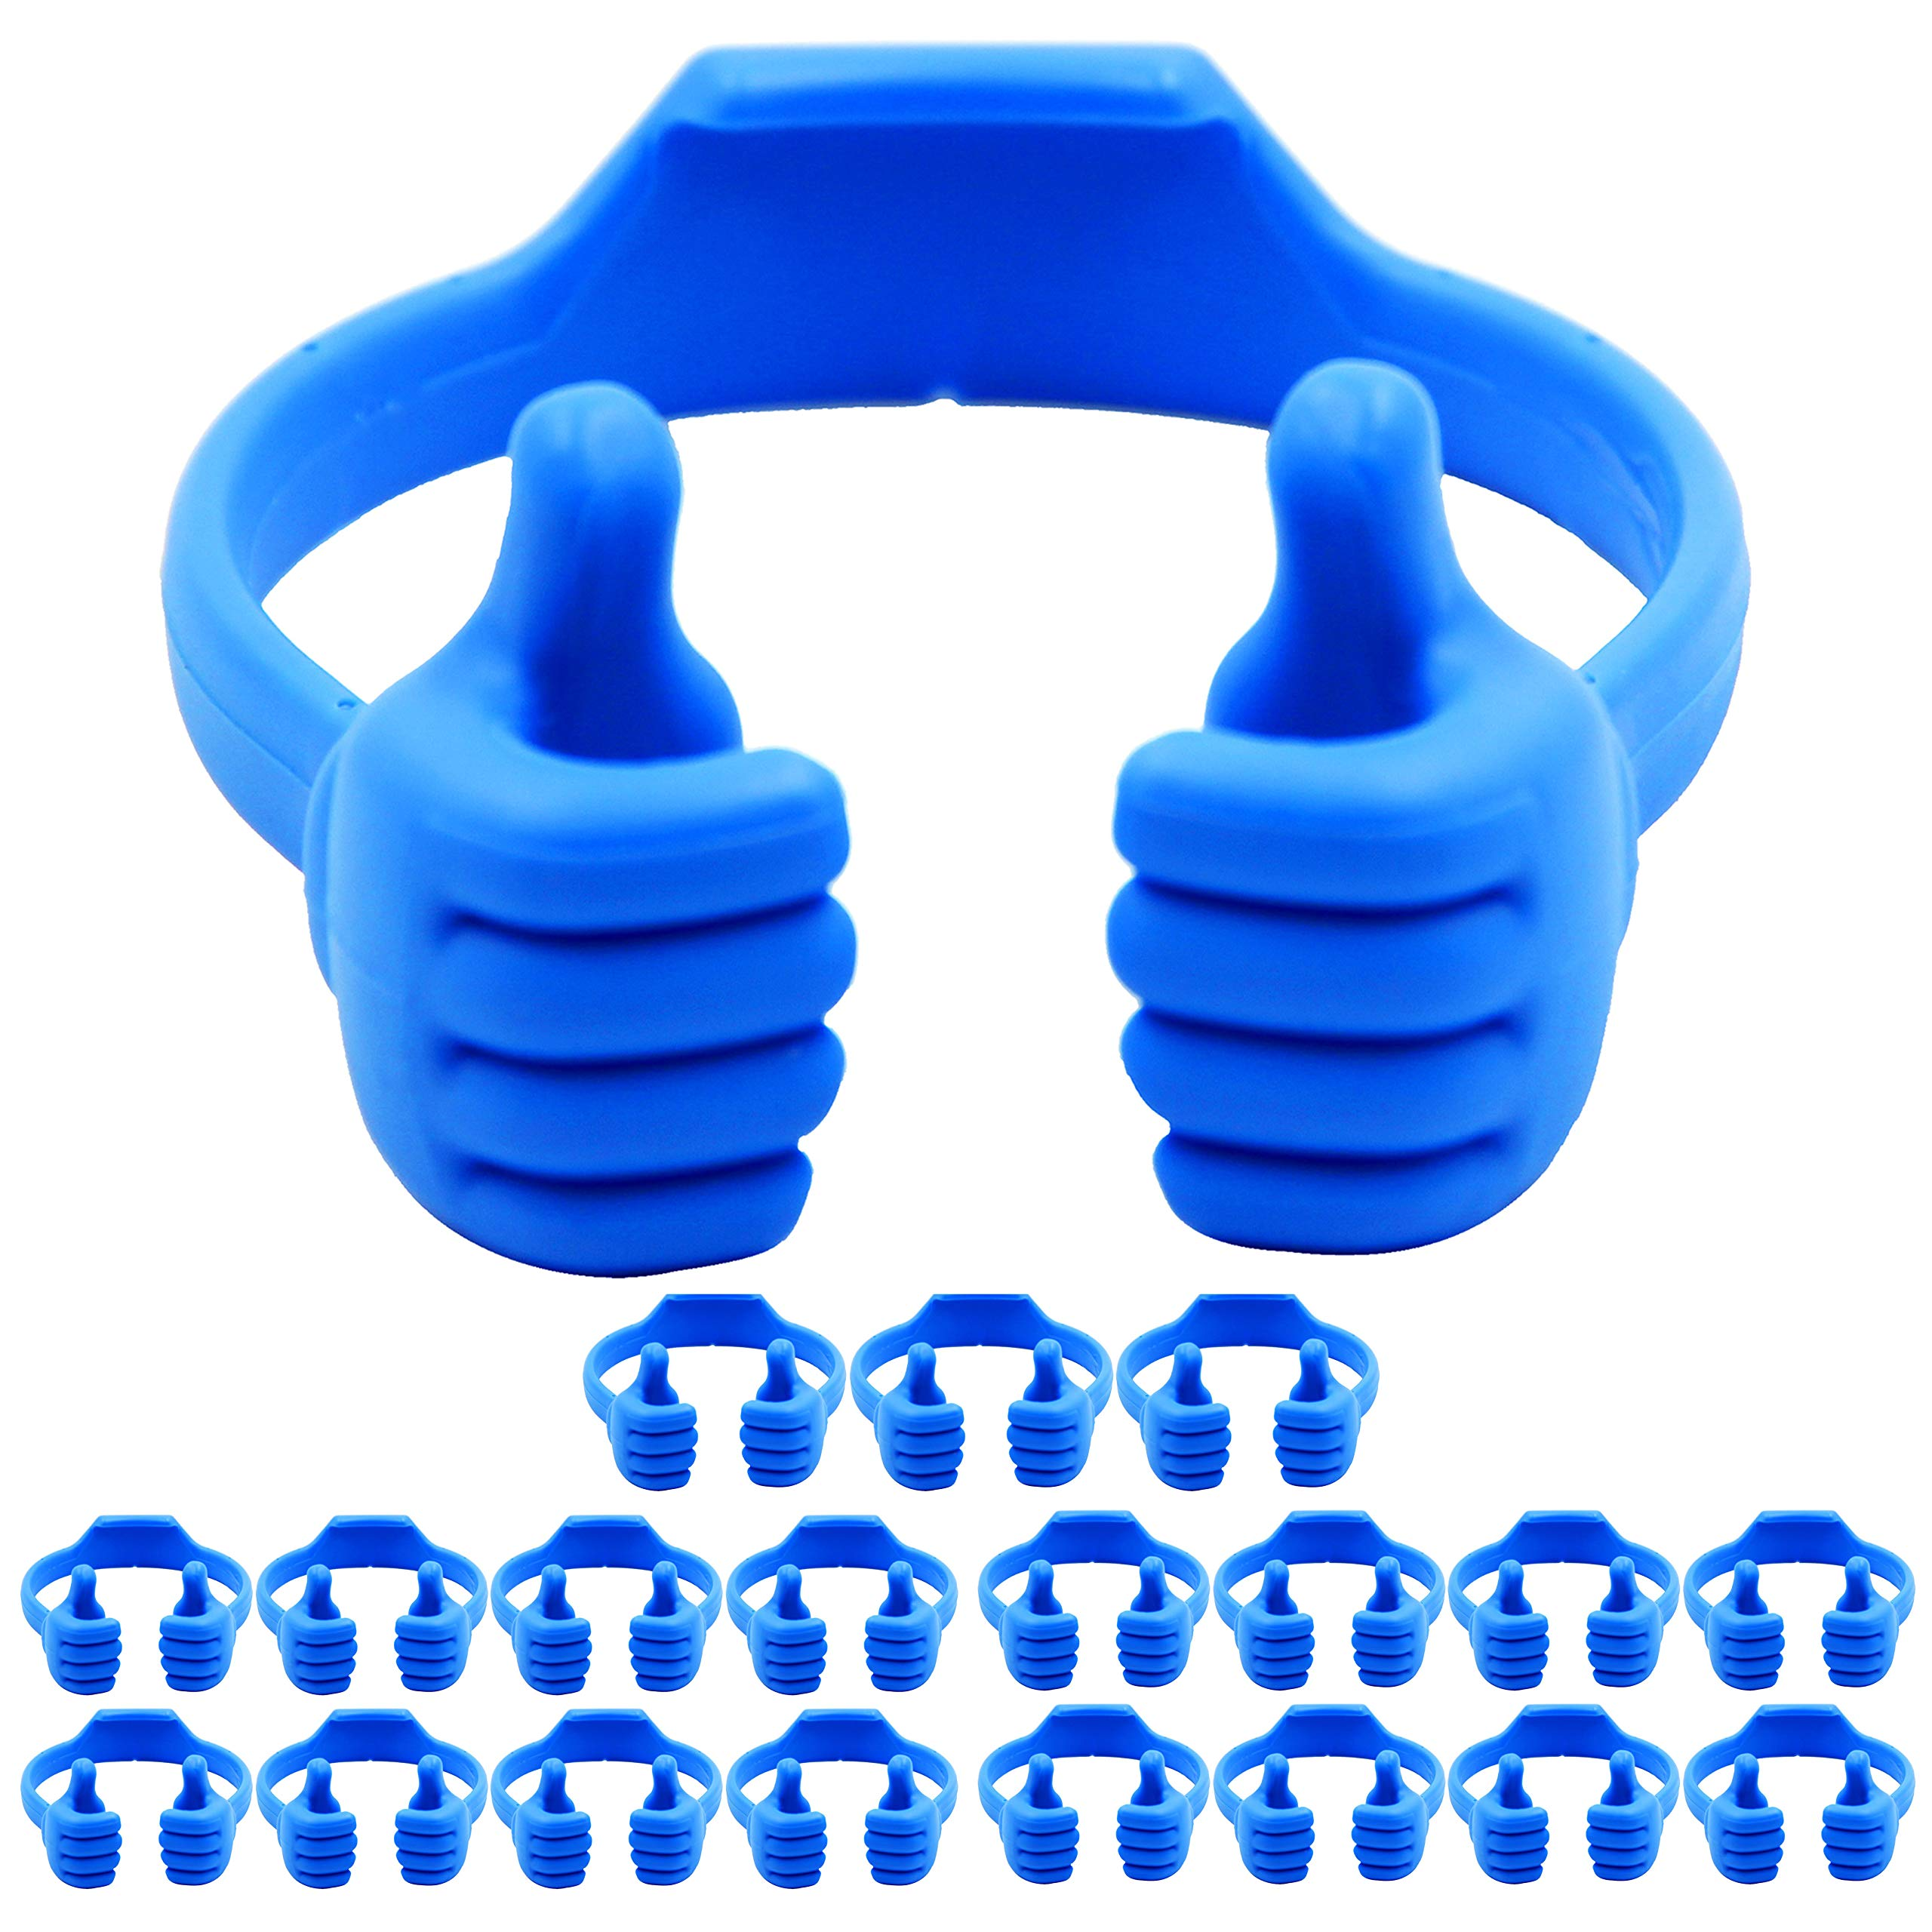 Cell Phone Tablet Stands (20 Packs): Honsky Thumbs-up Cellphone Holder, Tablet Display Stand, Mobile Smartphone Mount Cradle for Desk Desktop - Universal, Multi-Angle, Cute, Blue by Honsky